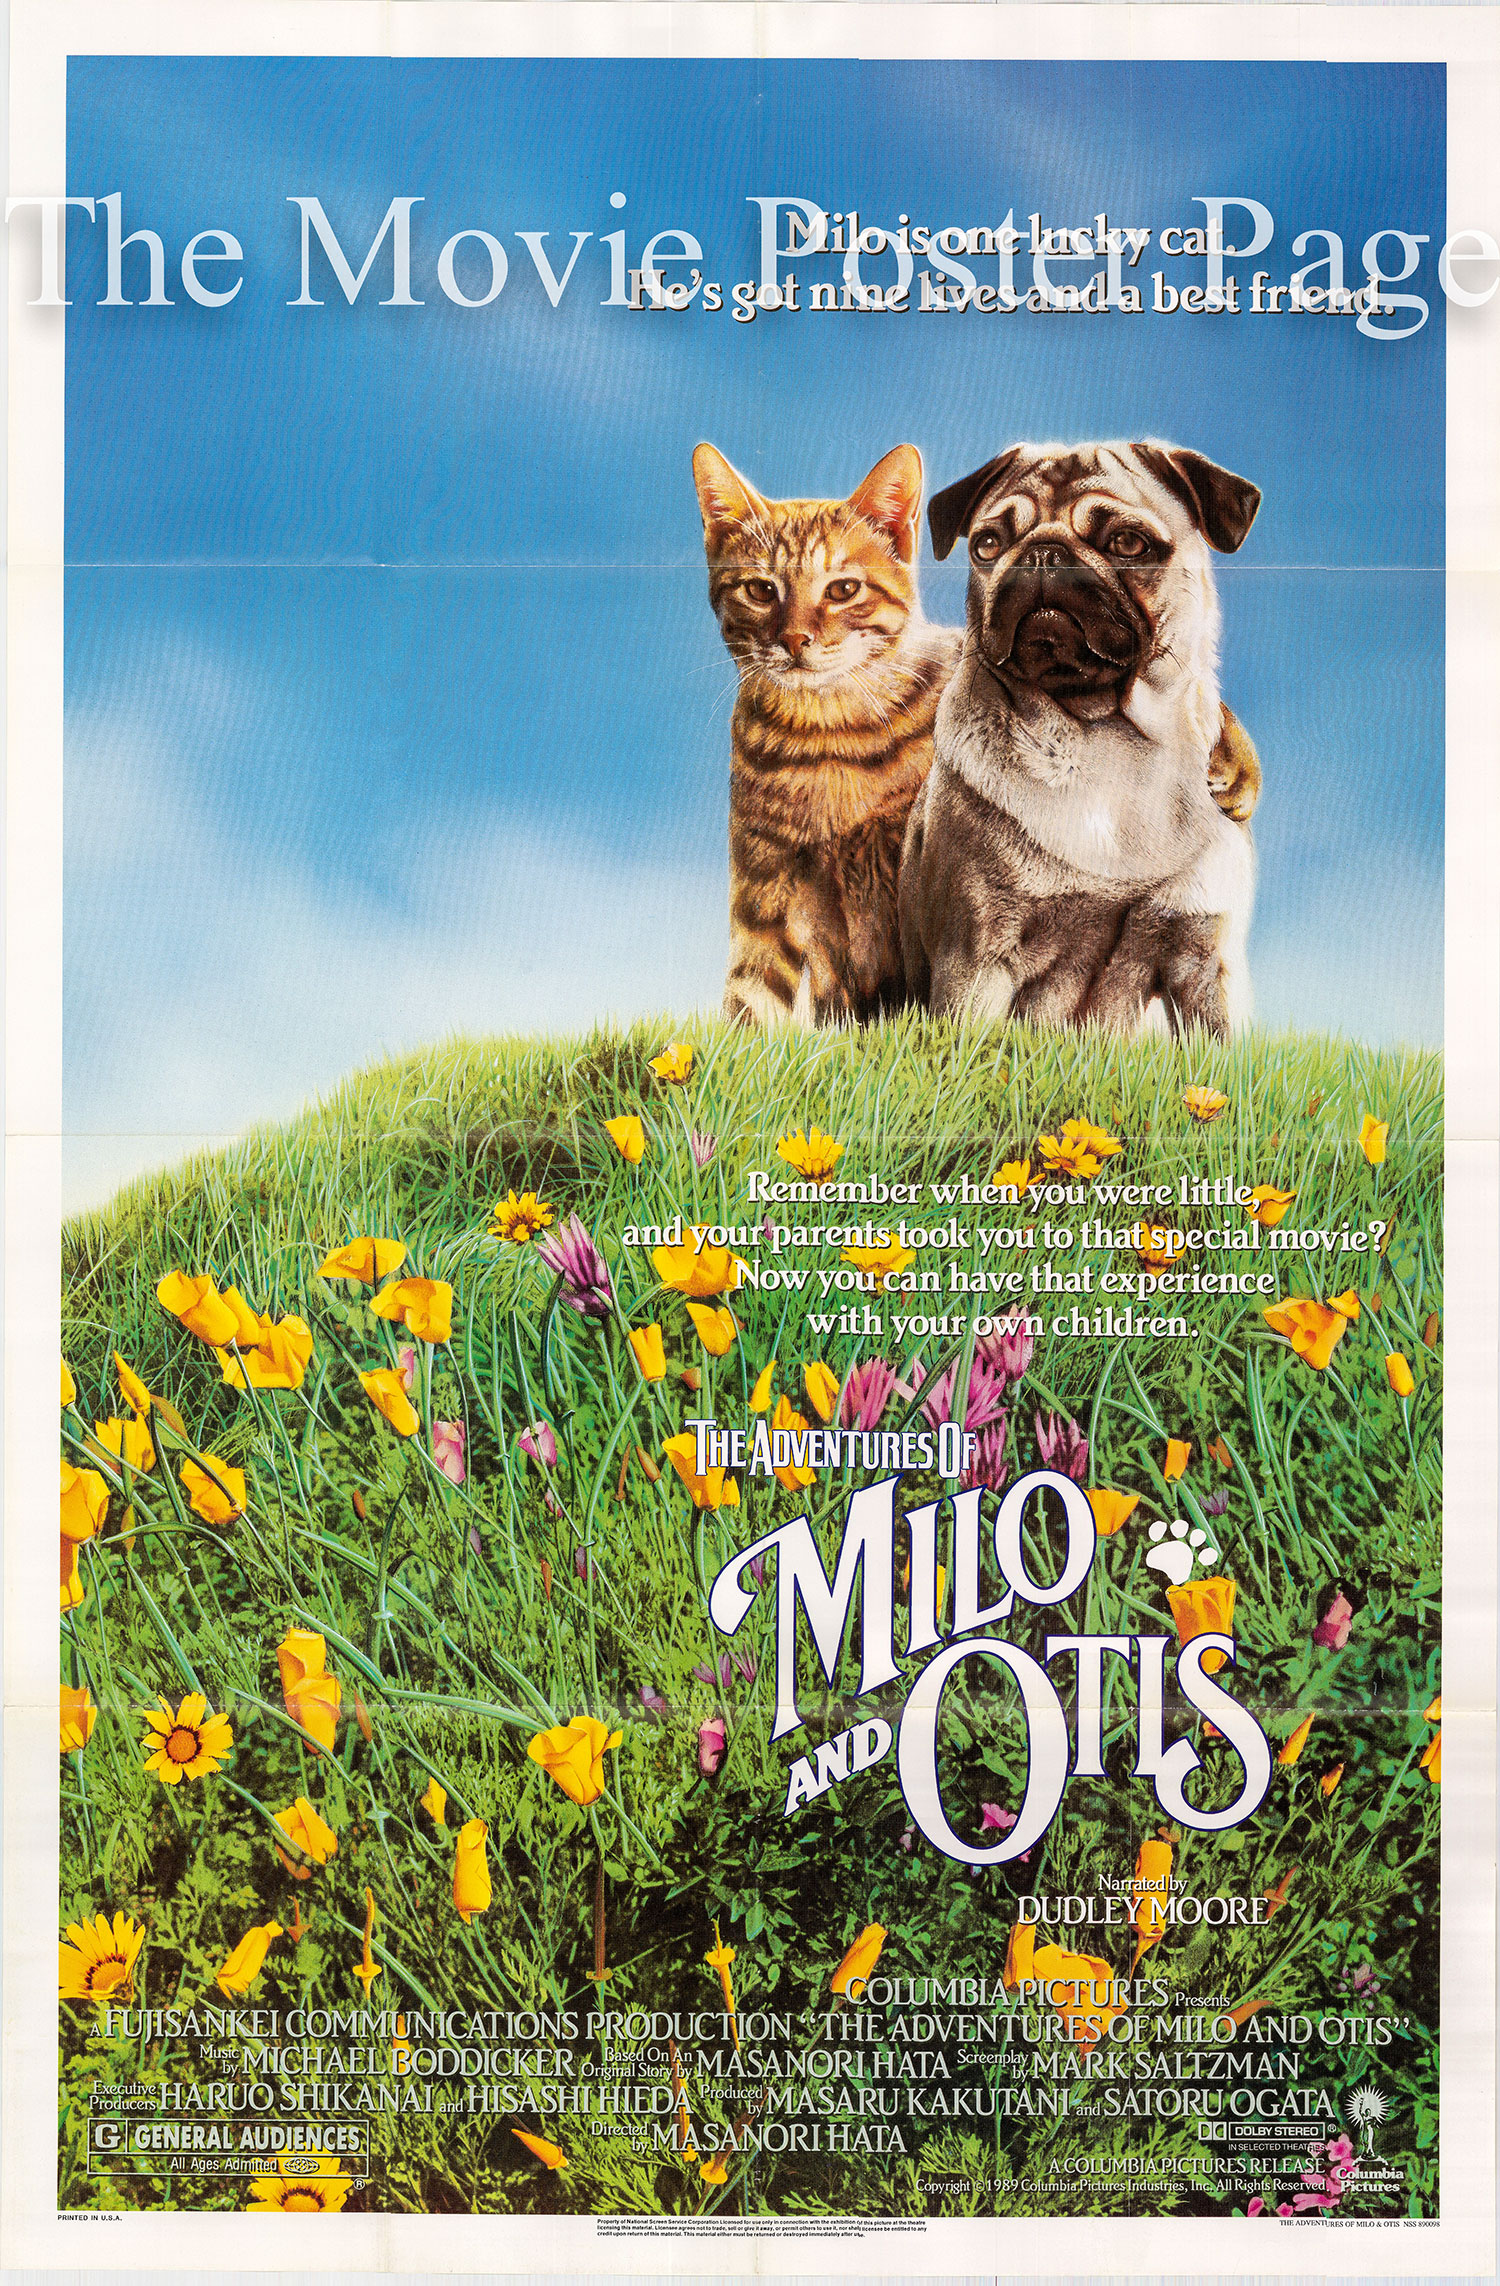 Pictured is a US one-sheet promotional poster for the US 1989 rerelease of the 1986 Masanori Hata film TheAdventures of Milo and Otis narrated by Dudley Moore and Shigeru Tsuyuki.